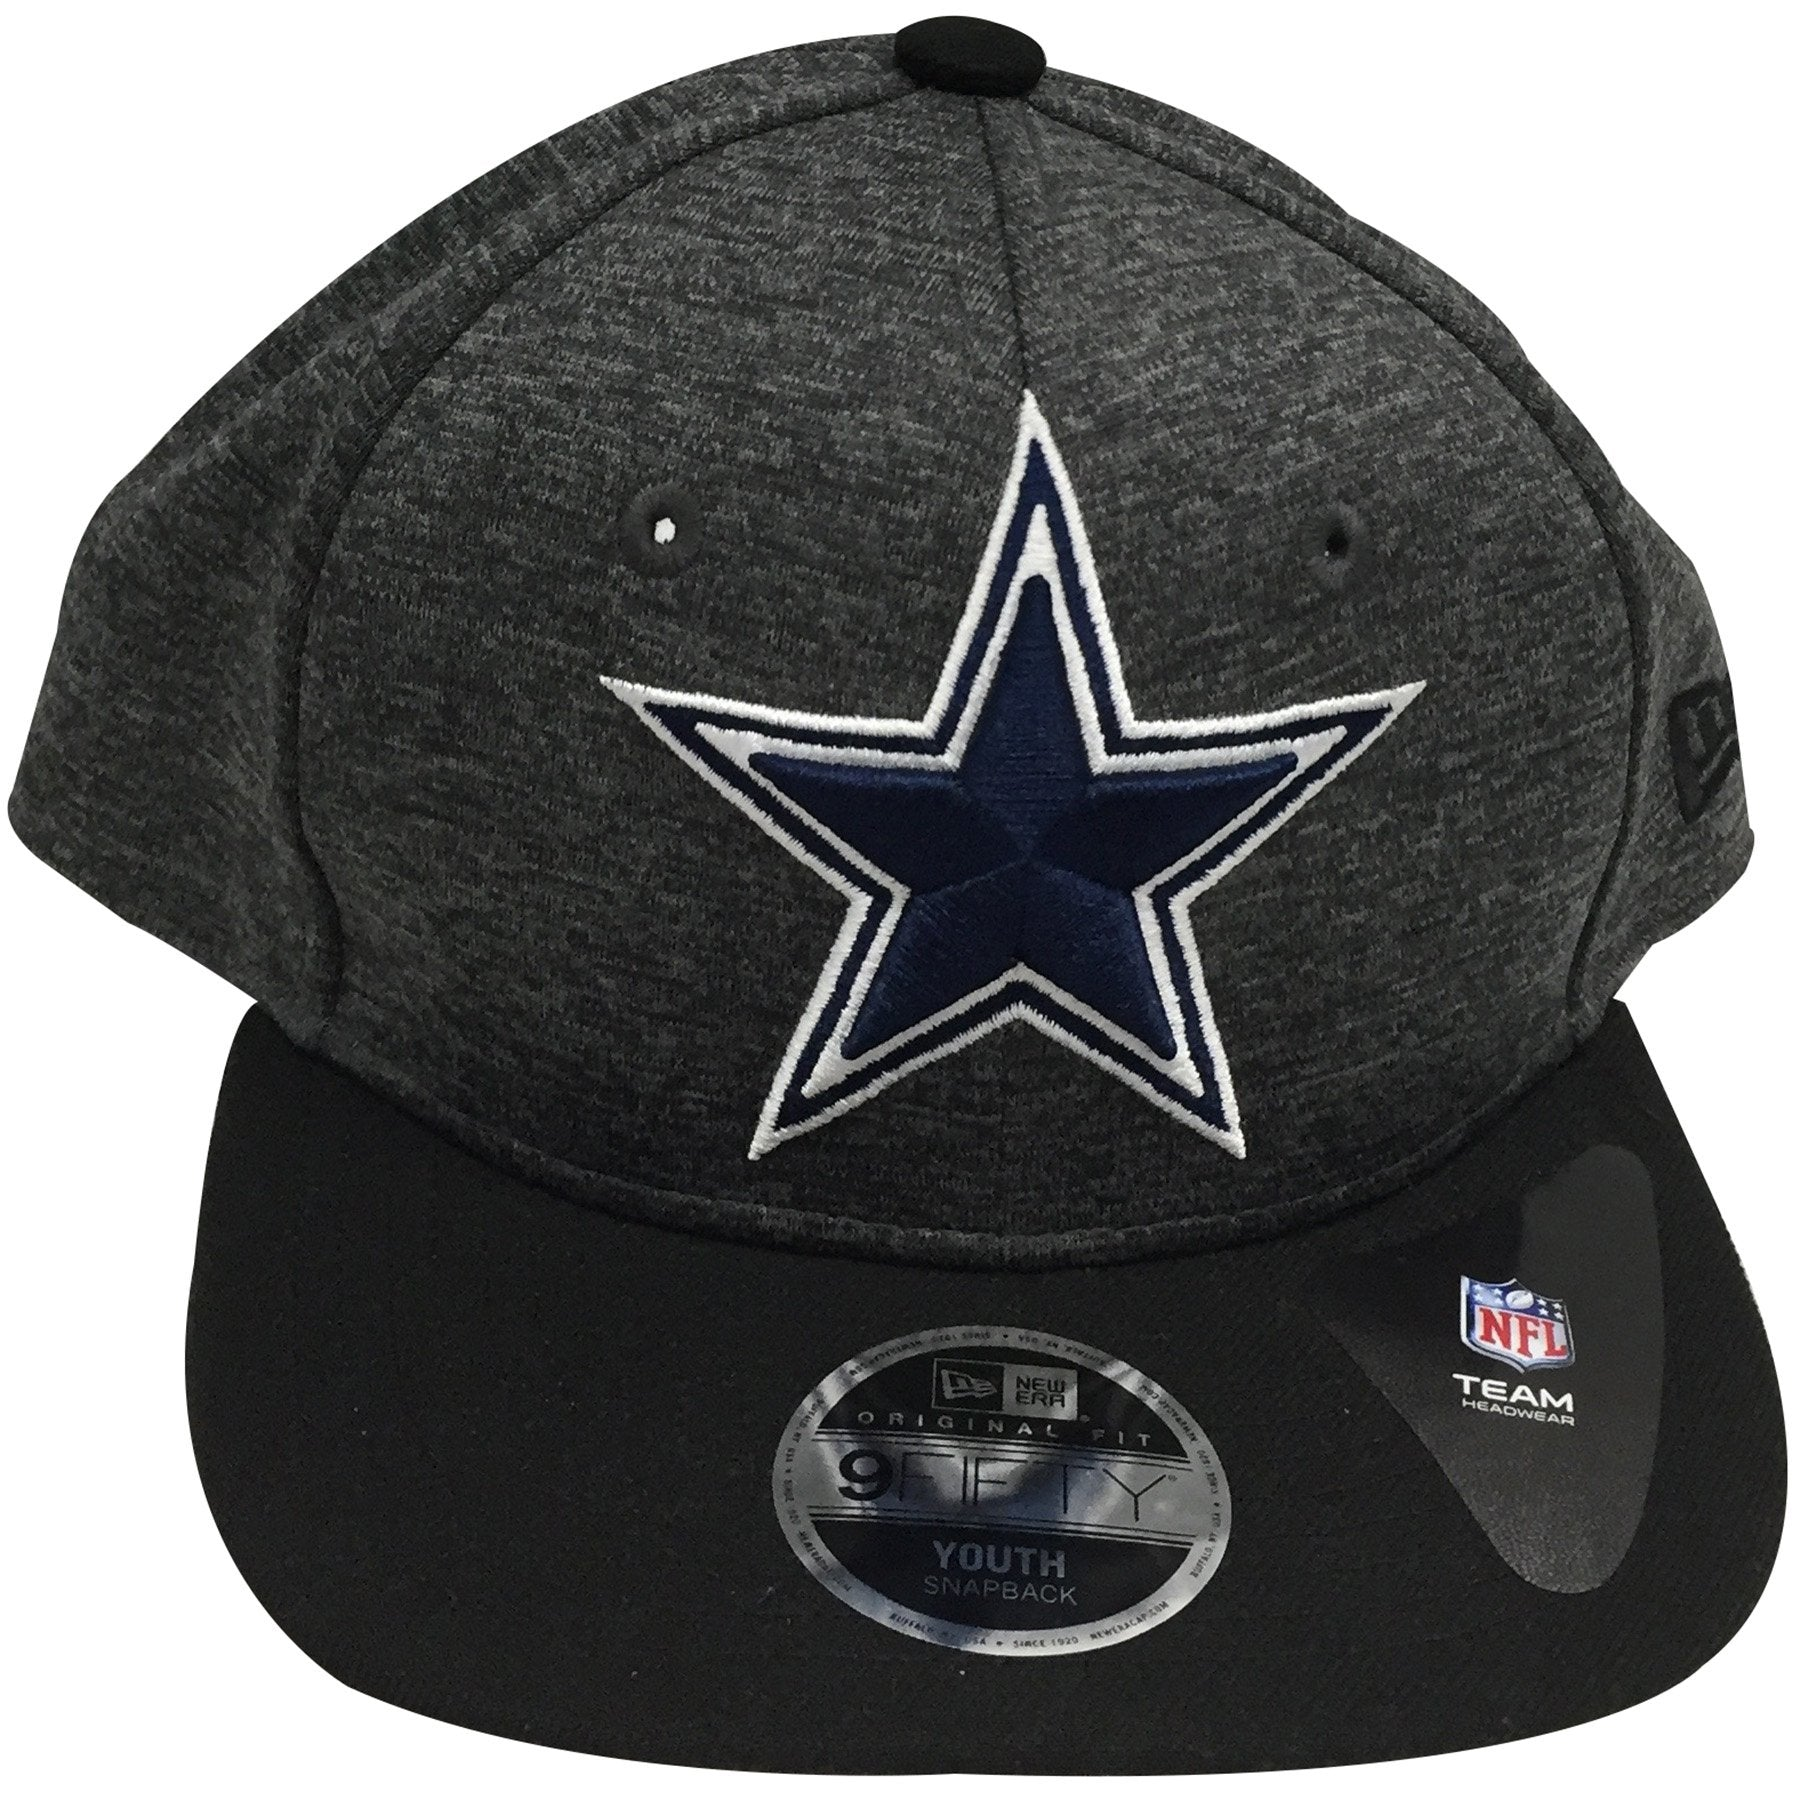 8b643b08e the kid's sized heather gray dallas cowboys snapback hat has a heather gray  crown, black